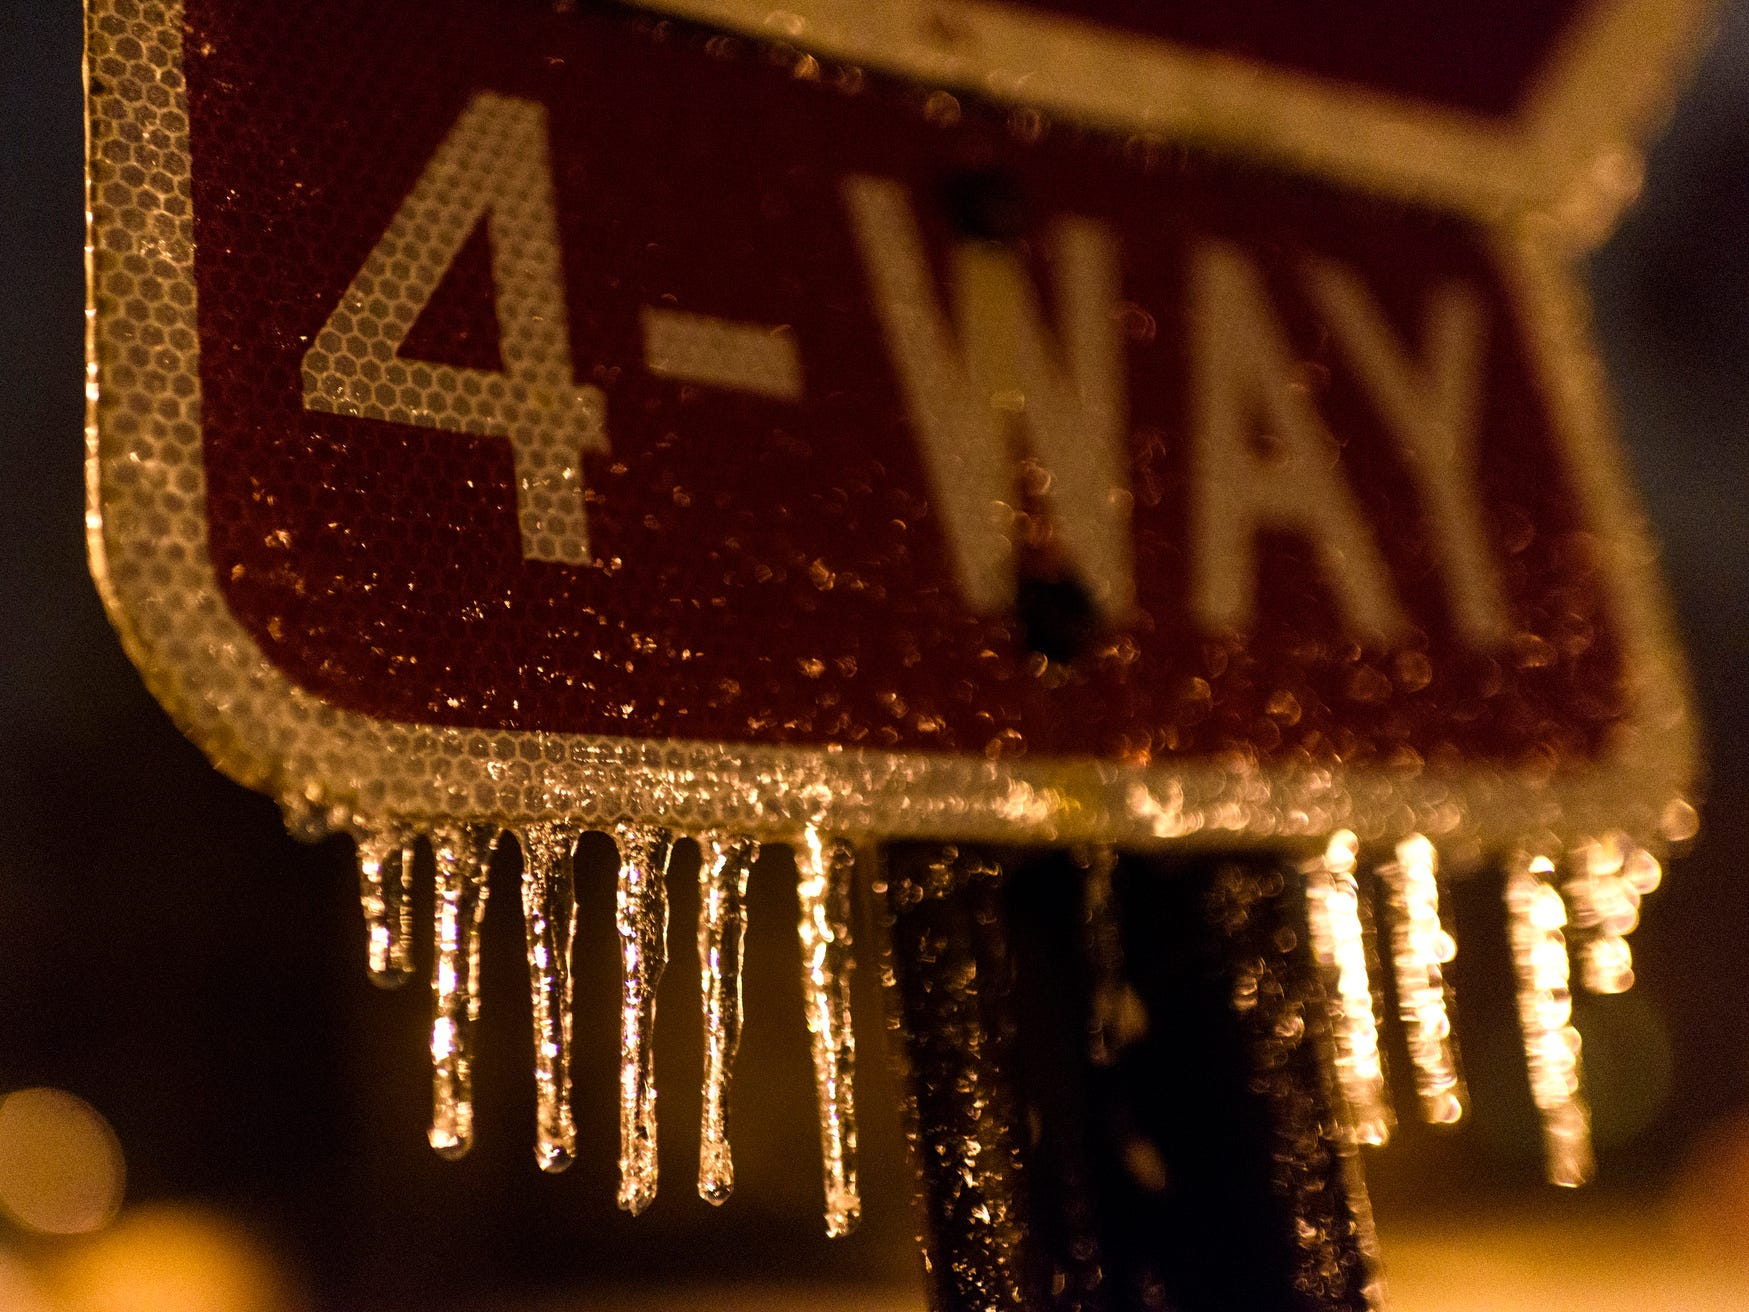 Icicles form on a four-way stop sign at the intersection of First Street and Chandler Avenue in downtown Evansville, Ind., Wednesday, Nov. 14, 2018. A Winter Weather advisory was issued for the Evansville area through 6 p.m. Thursday.